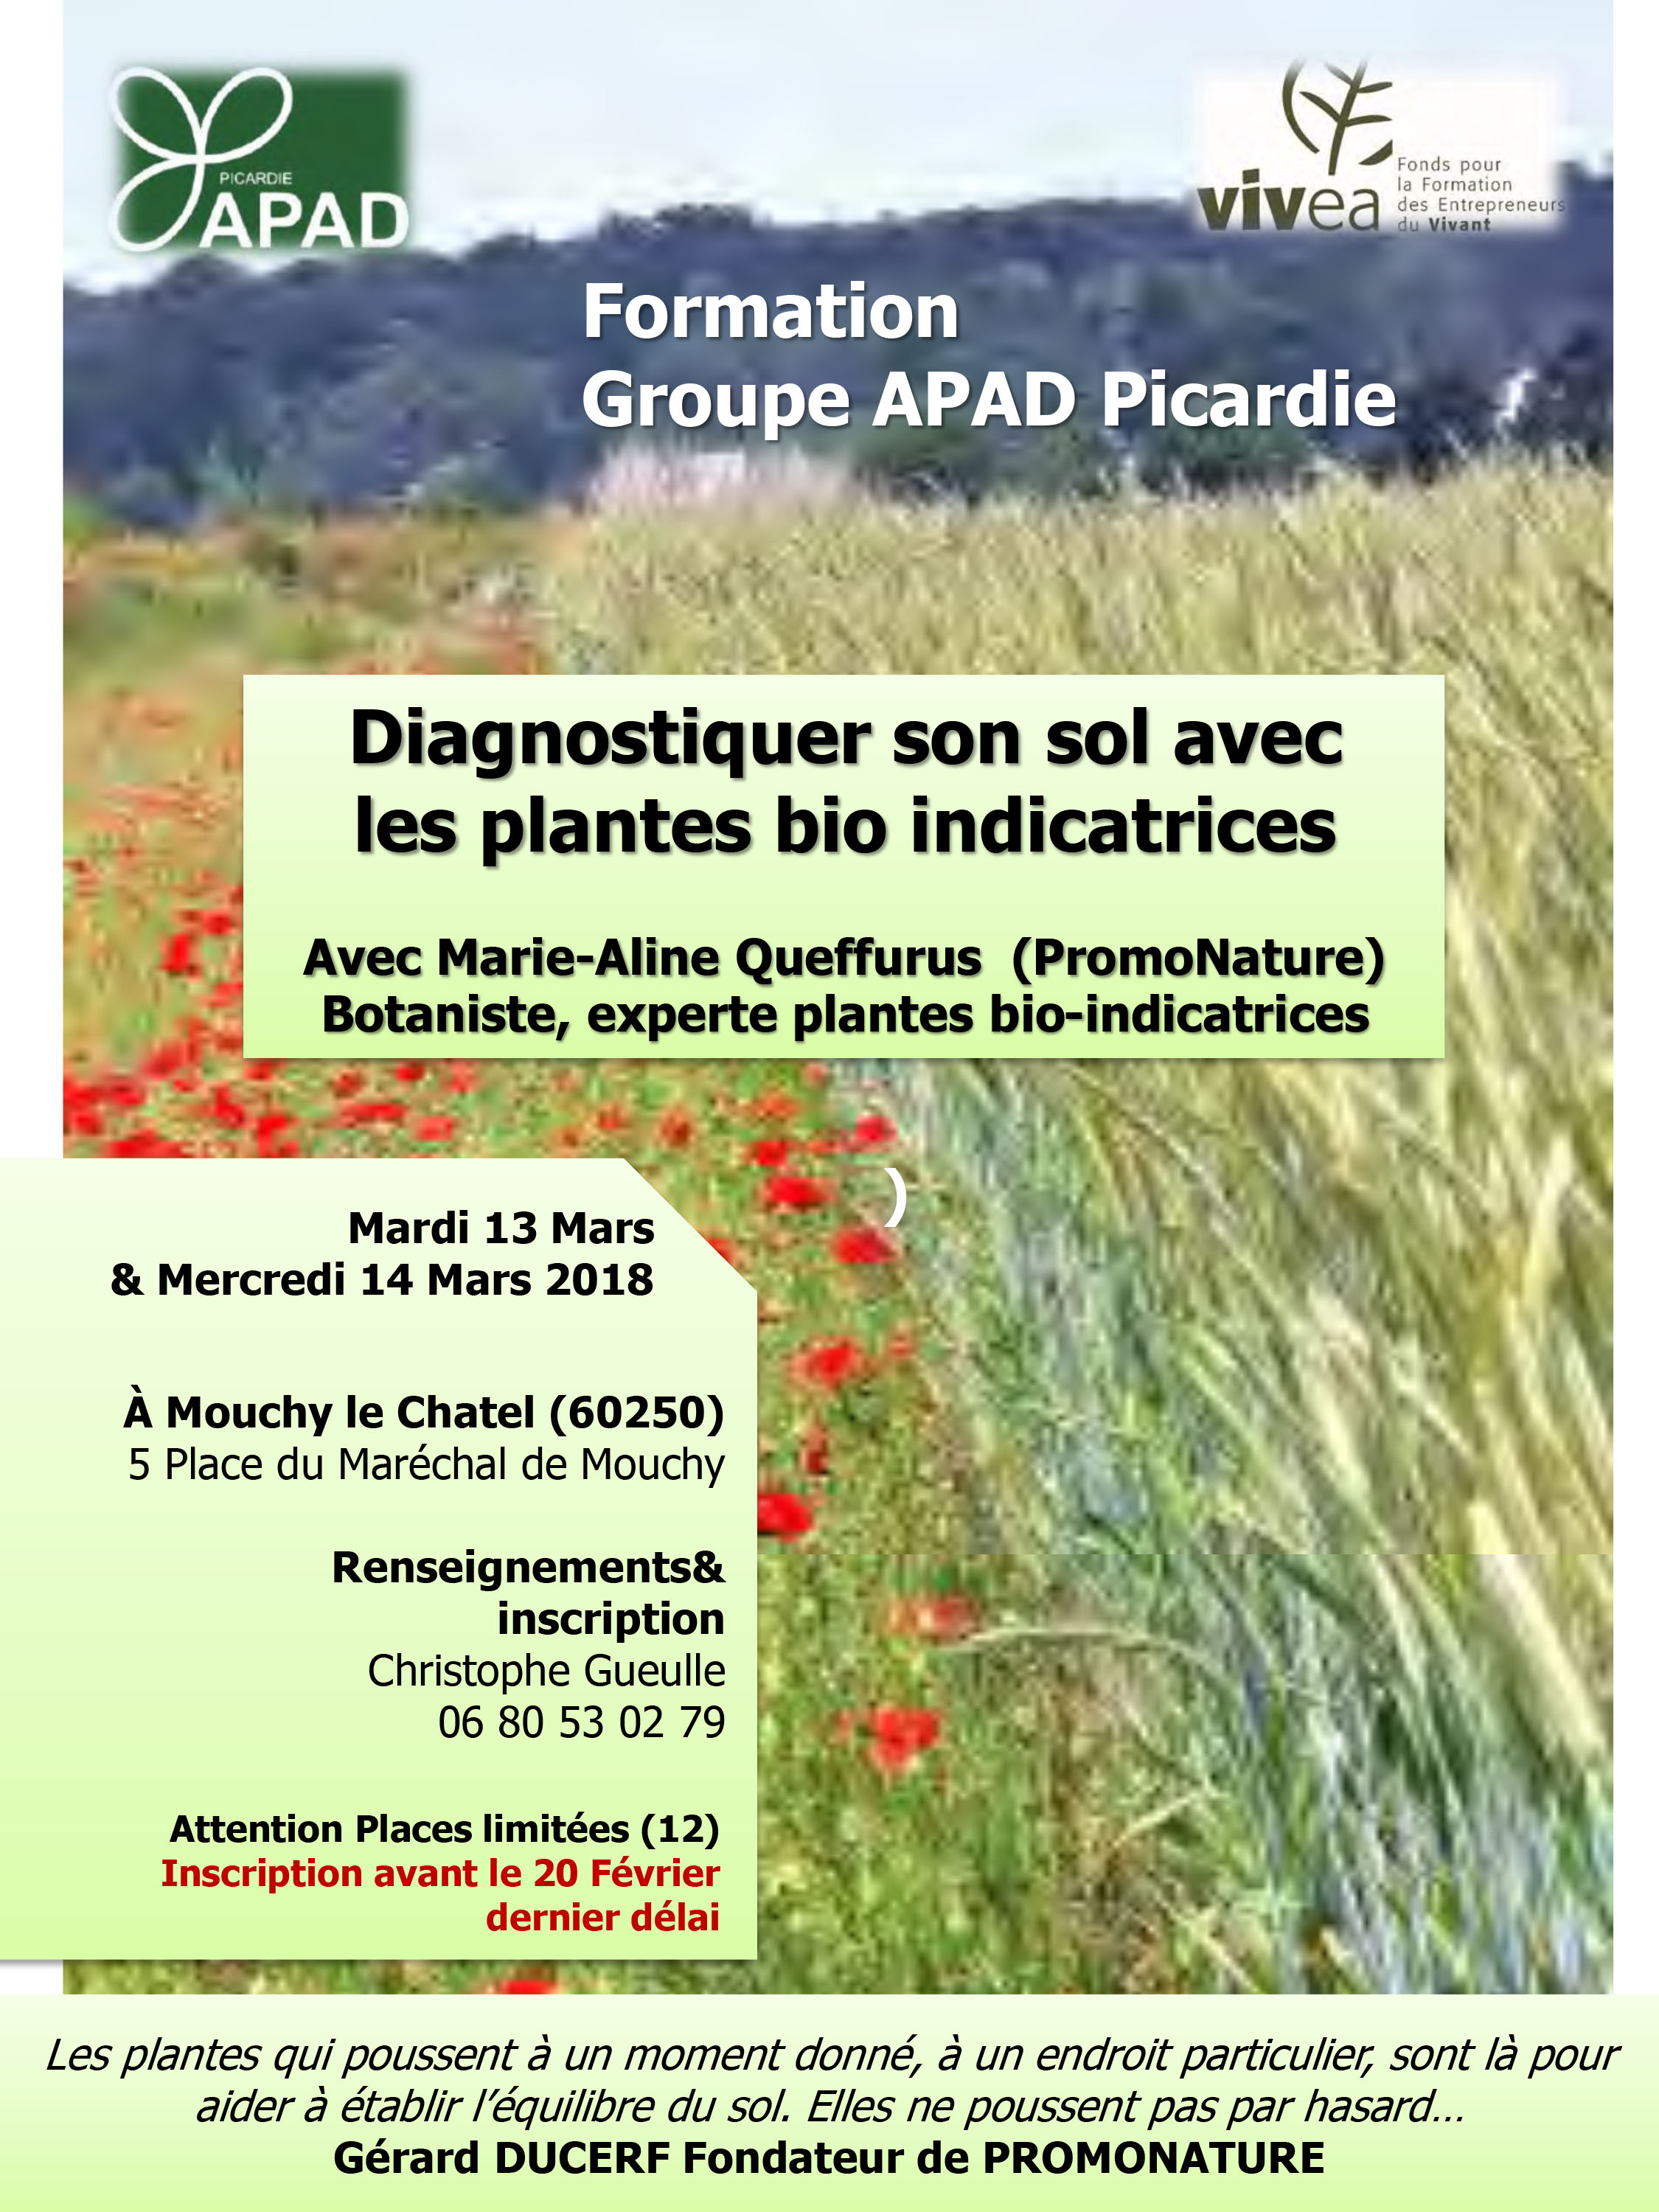 Progr formation APAD Picardie PlantesBioindicatrices recto